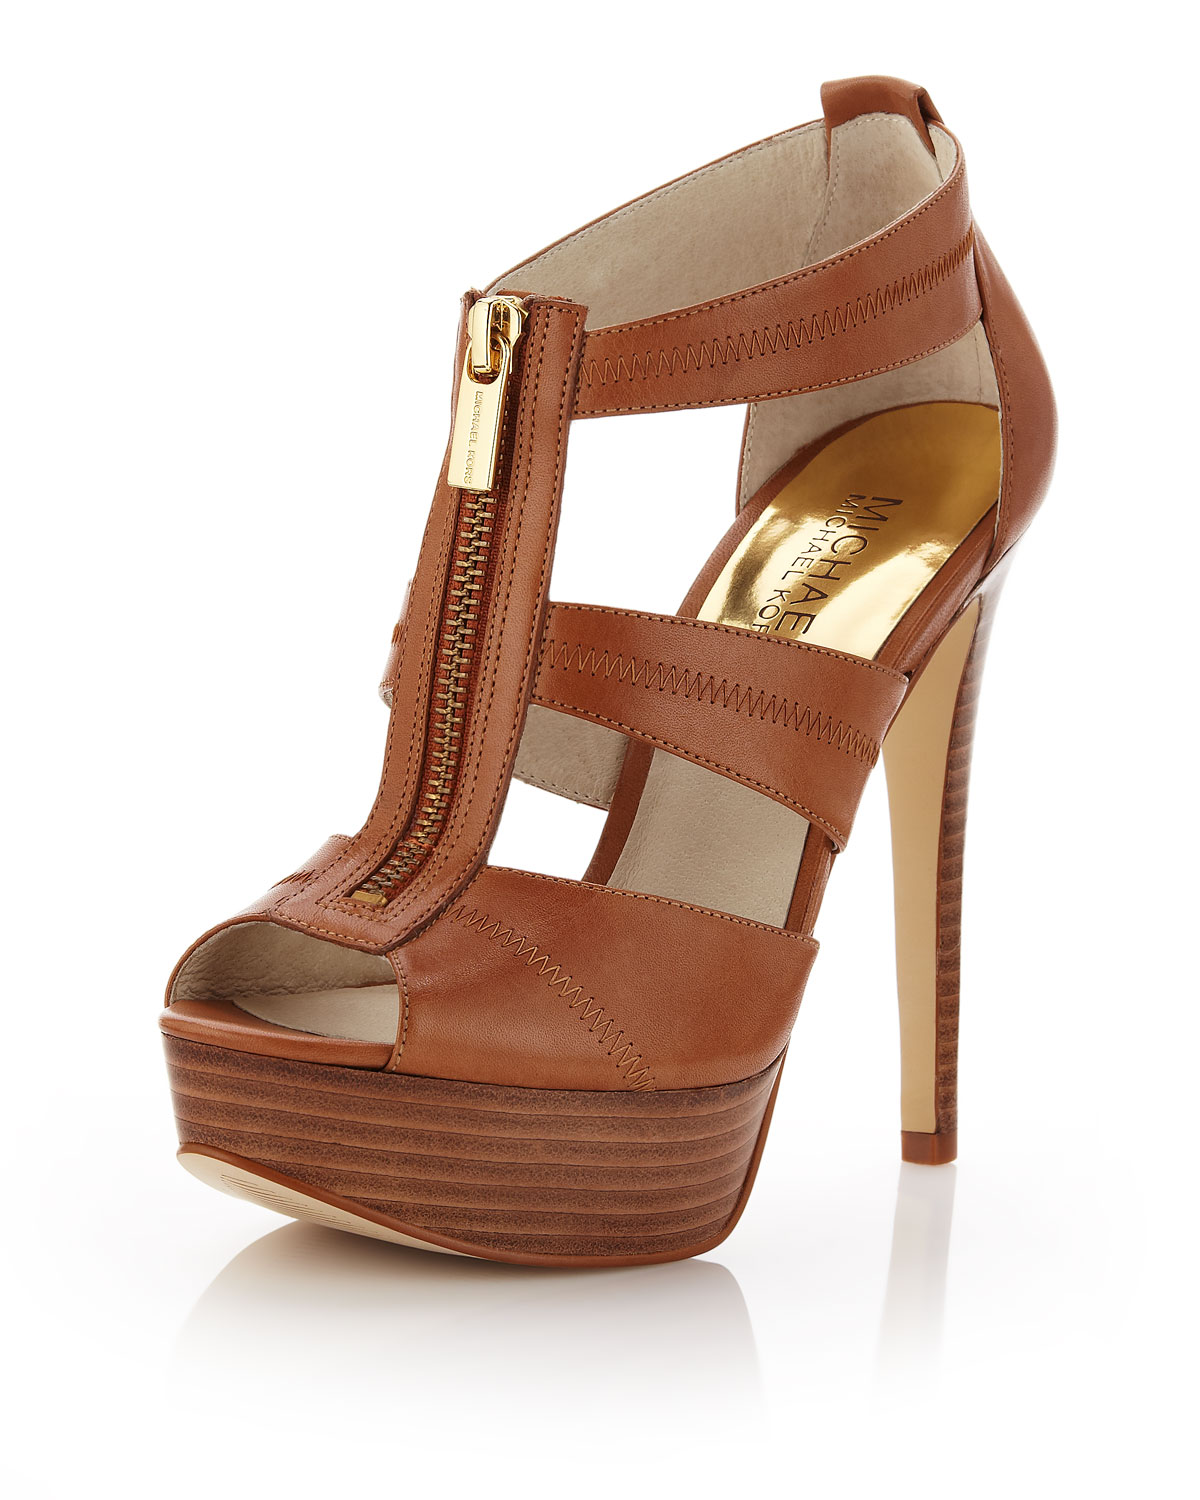 Michael Kors Brown Leather Shoes